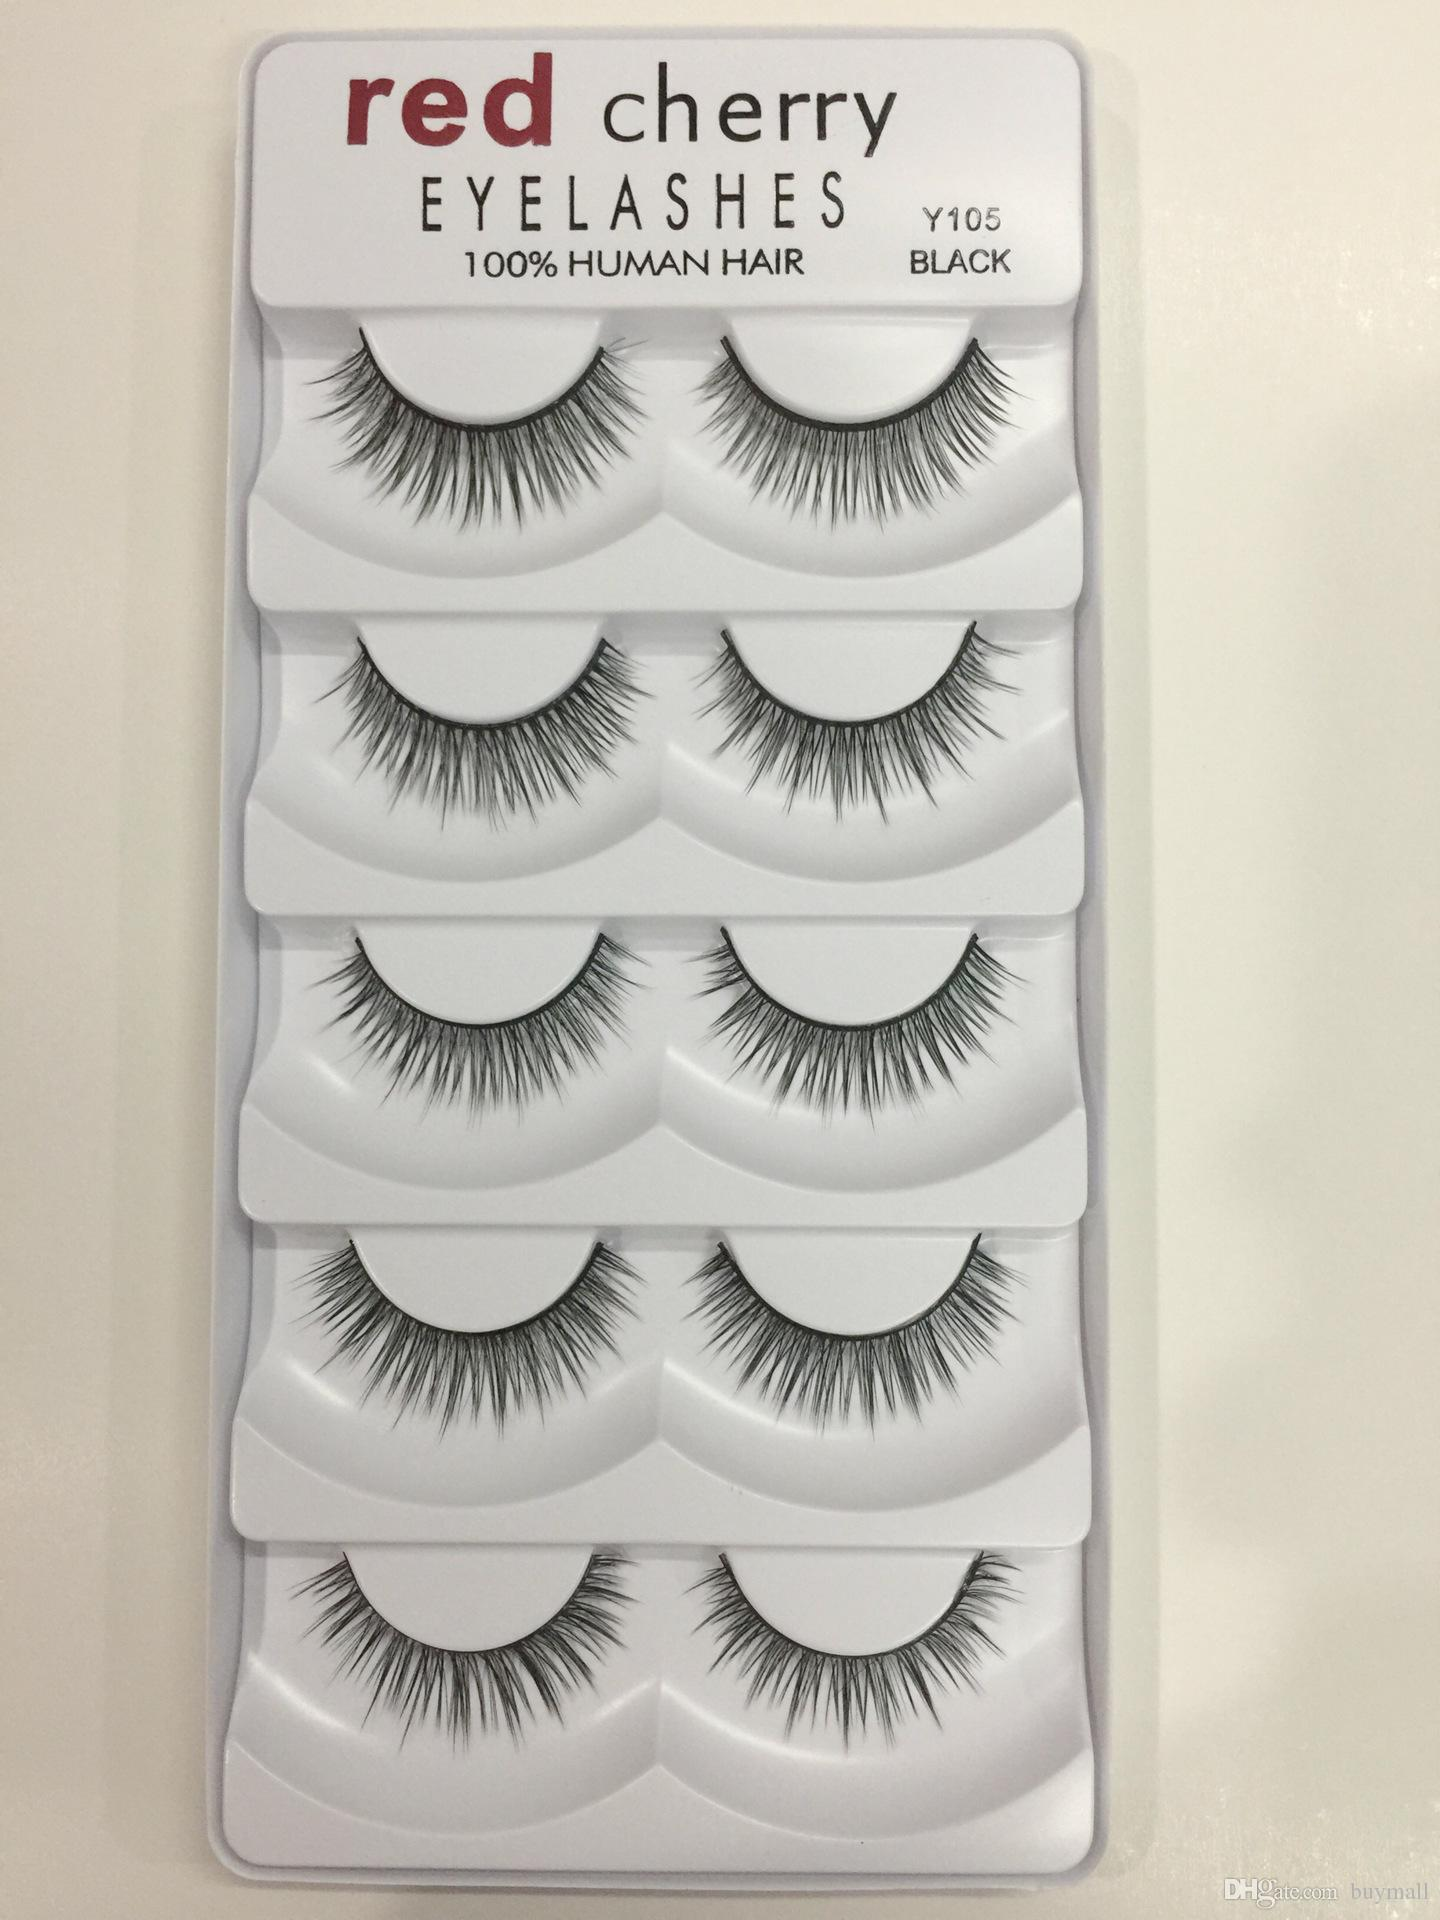 Red Cherry False Eyelashes 100% Human Hair 5 pairs each set Black color 8 styles available drop shipping Fake Lashes